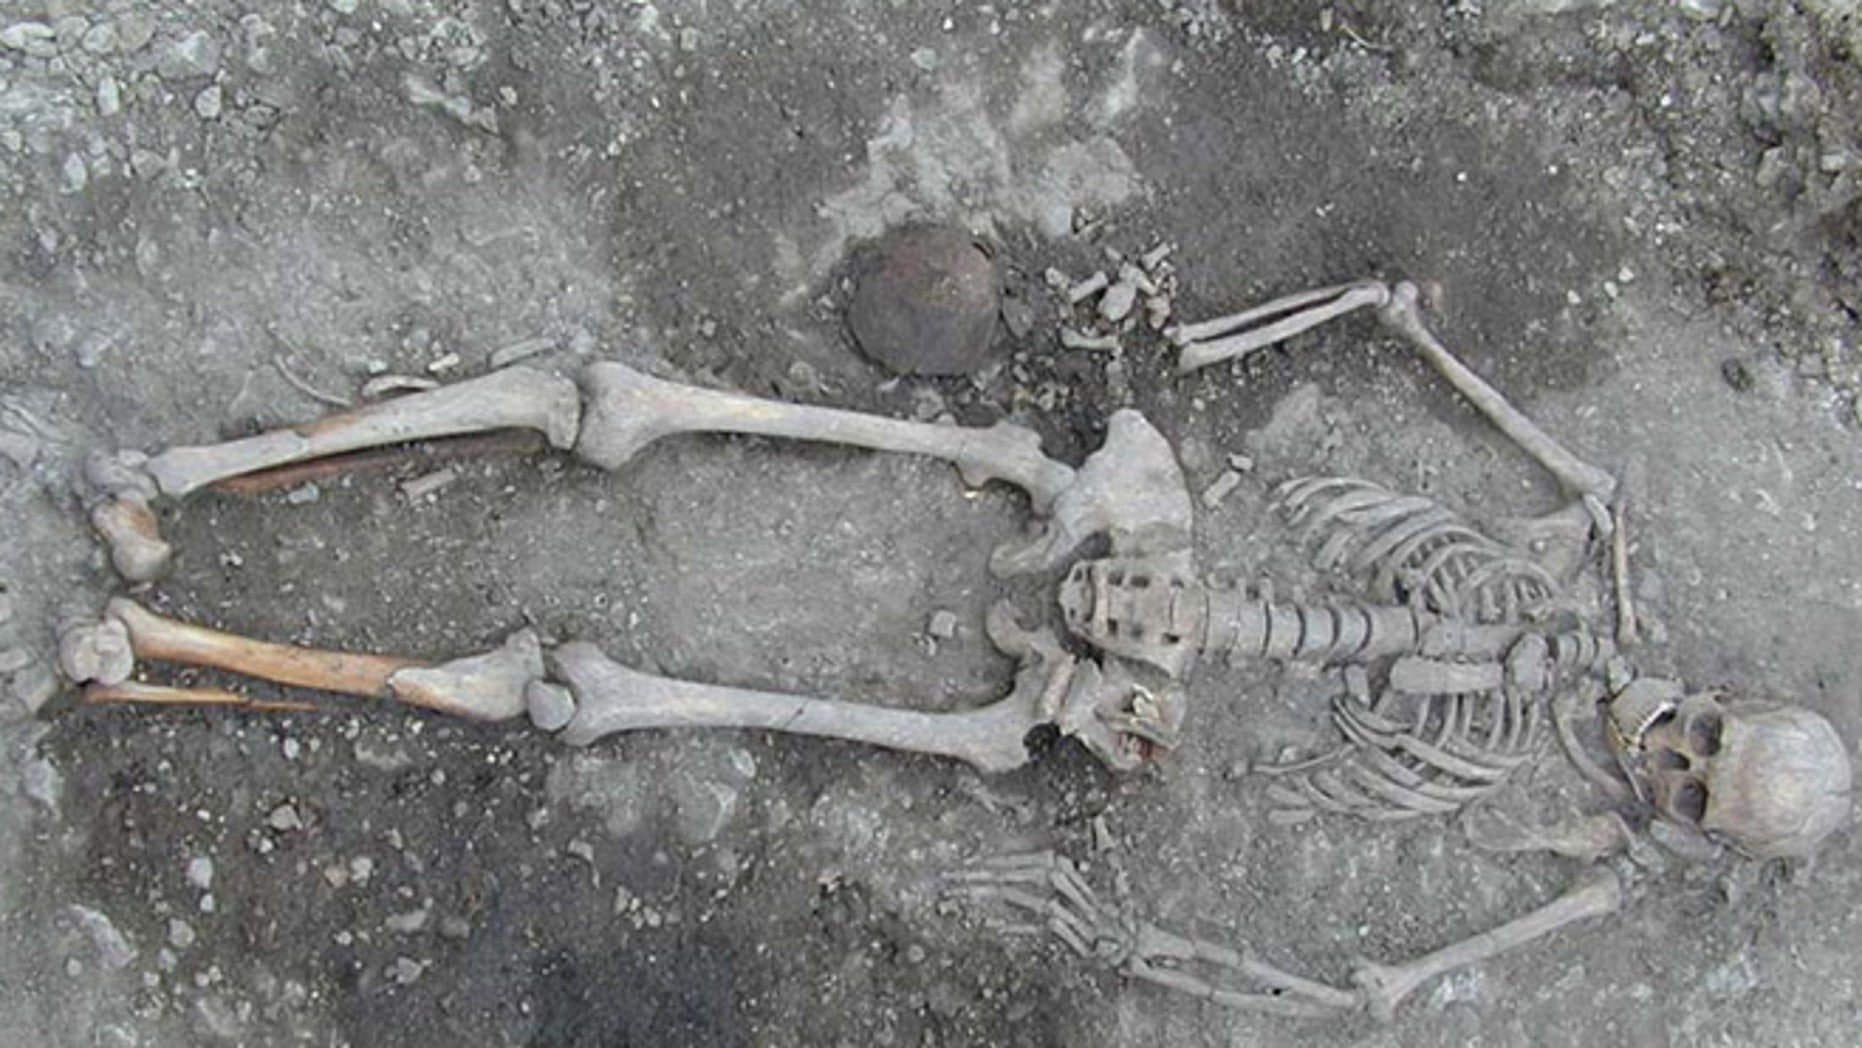 DNA taken from ancient European skeletons reveals that the genetic makeup of Europe mysteriously transformed about 4,500 years ago, new research suggests. Here, a skeleton, not used in the study, but from the same time period, that was excavated from a grave in Sweden.